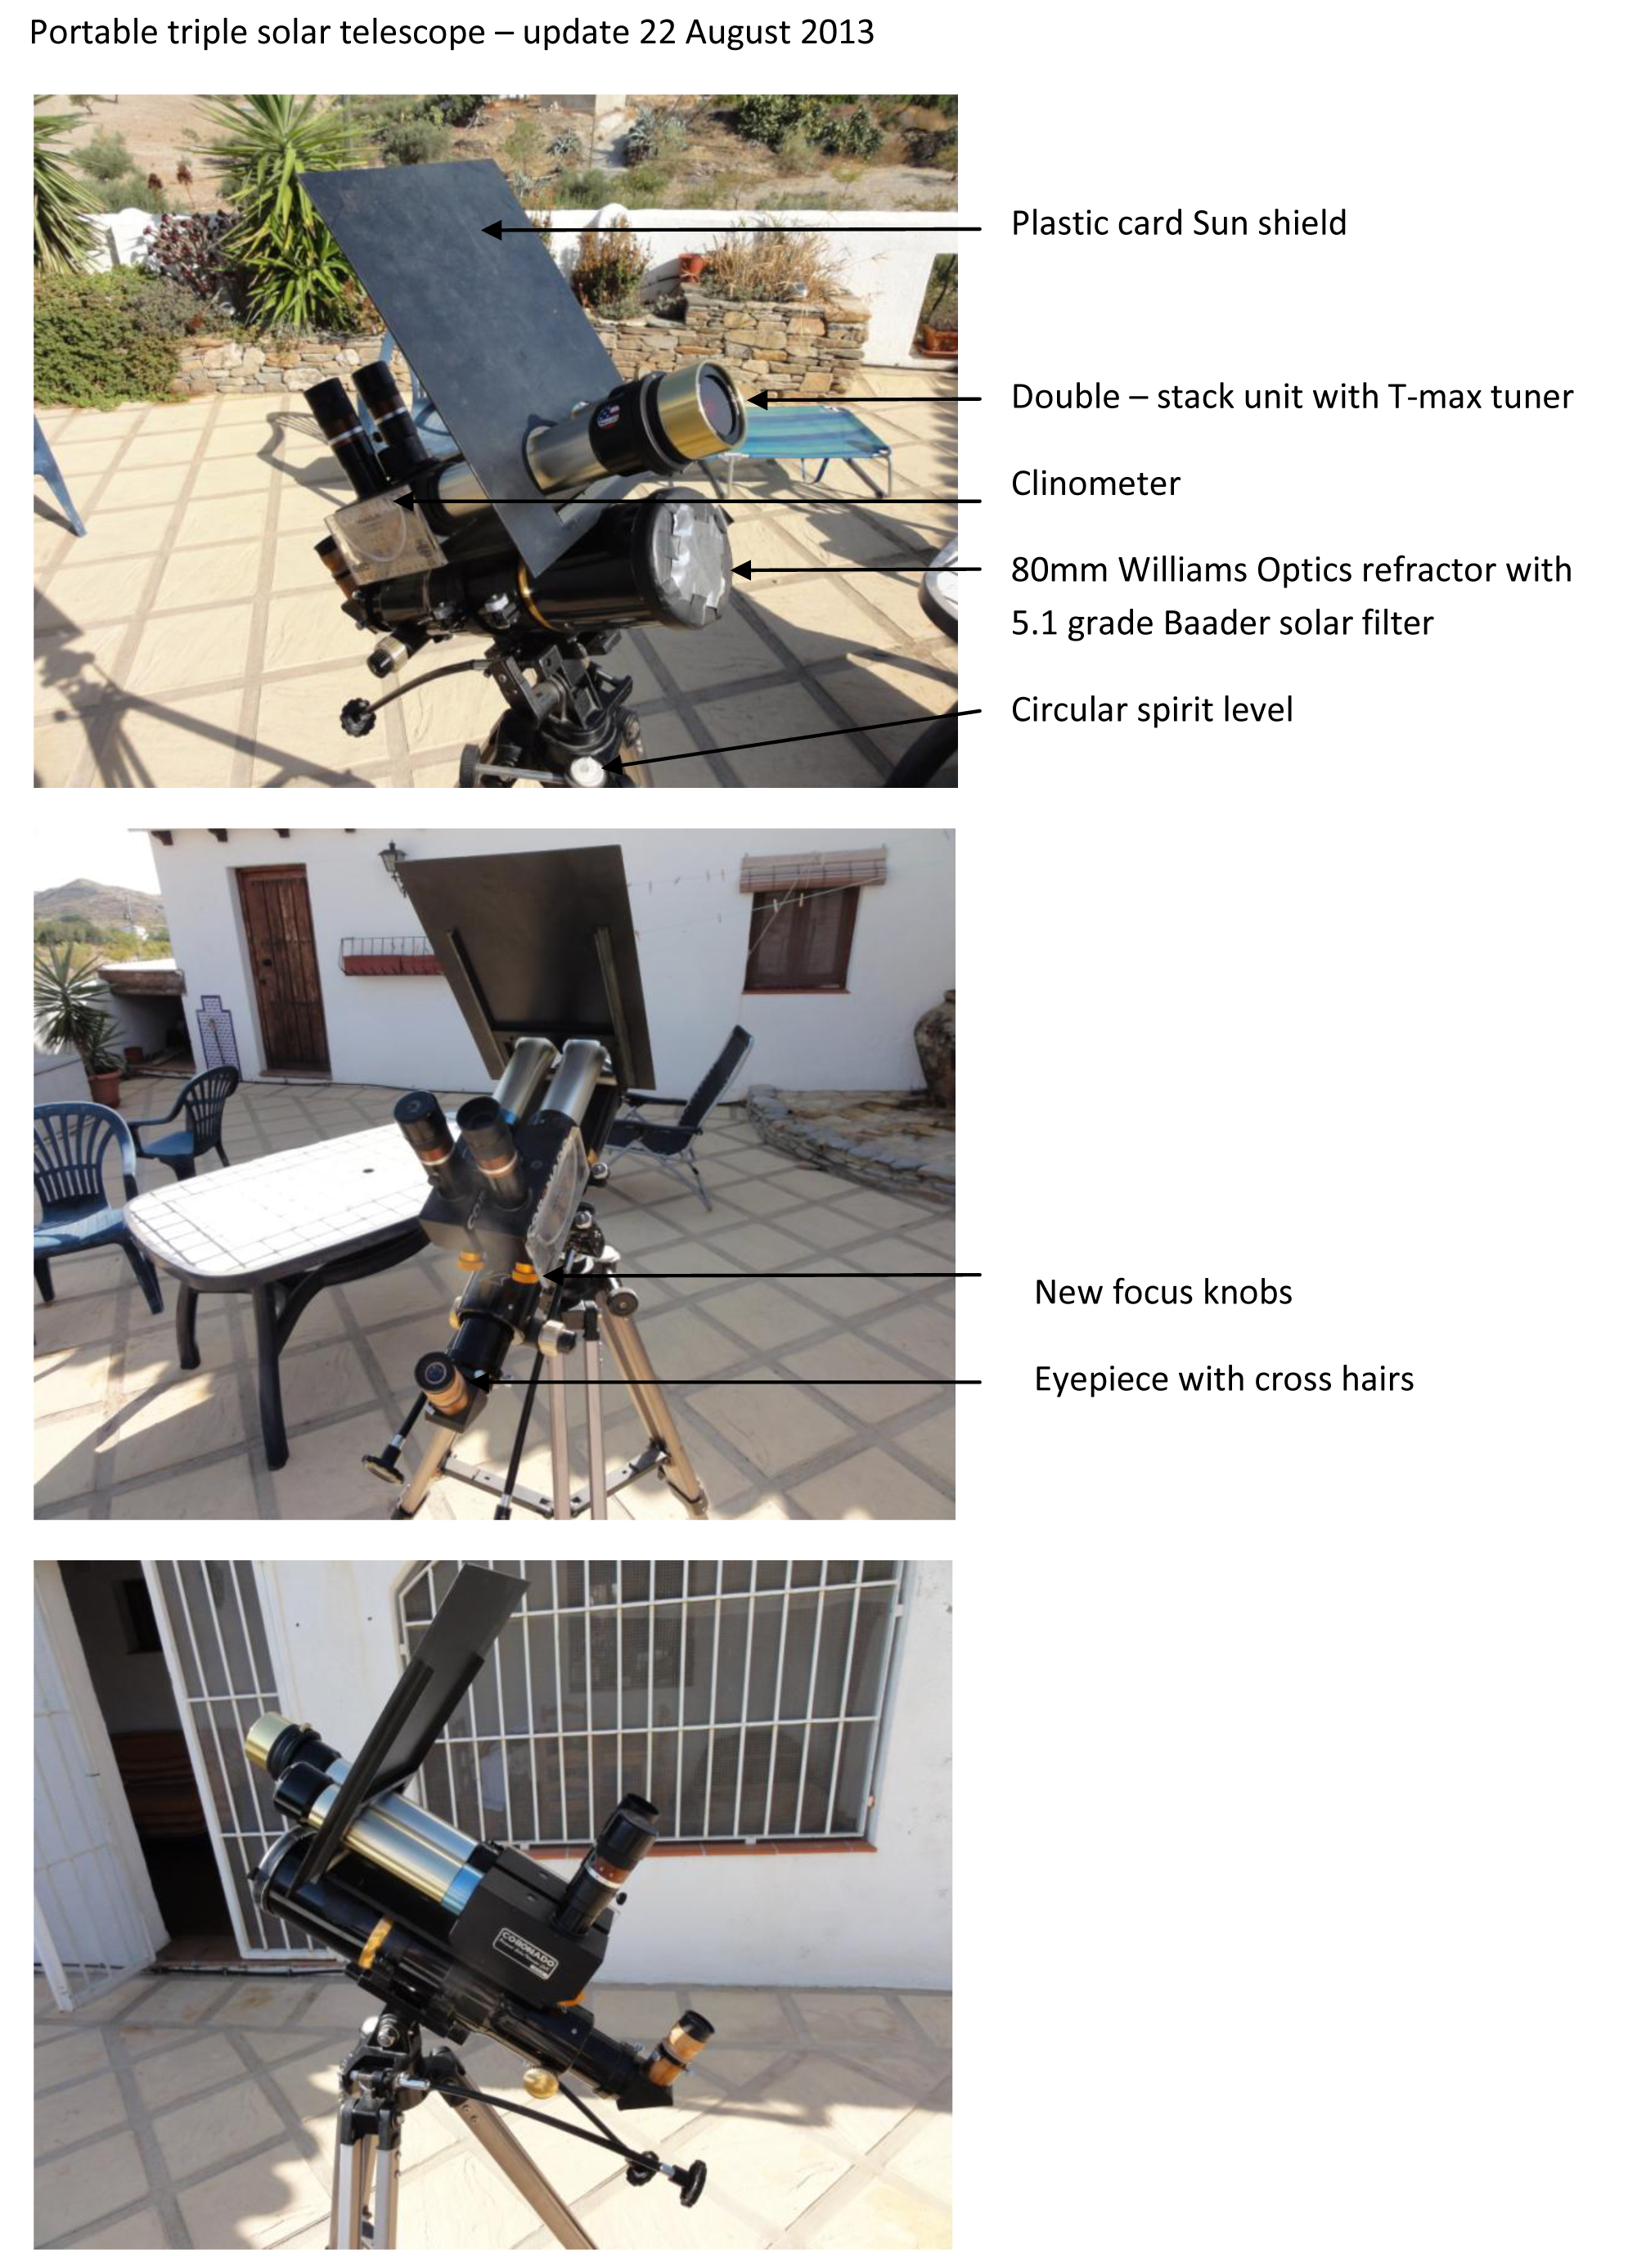 images/stories/triple solar telescope.jpg